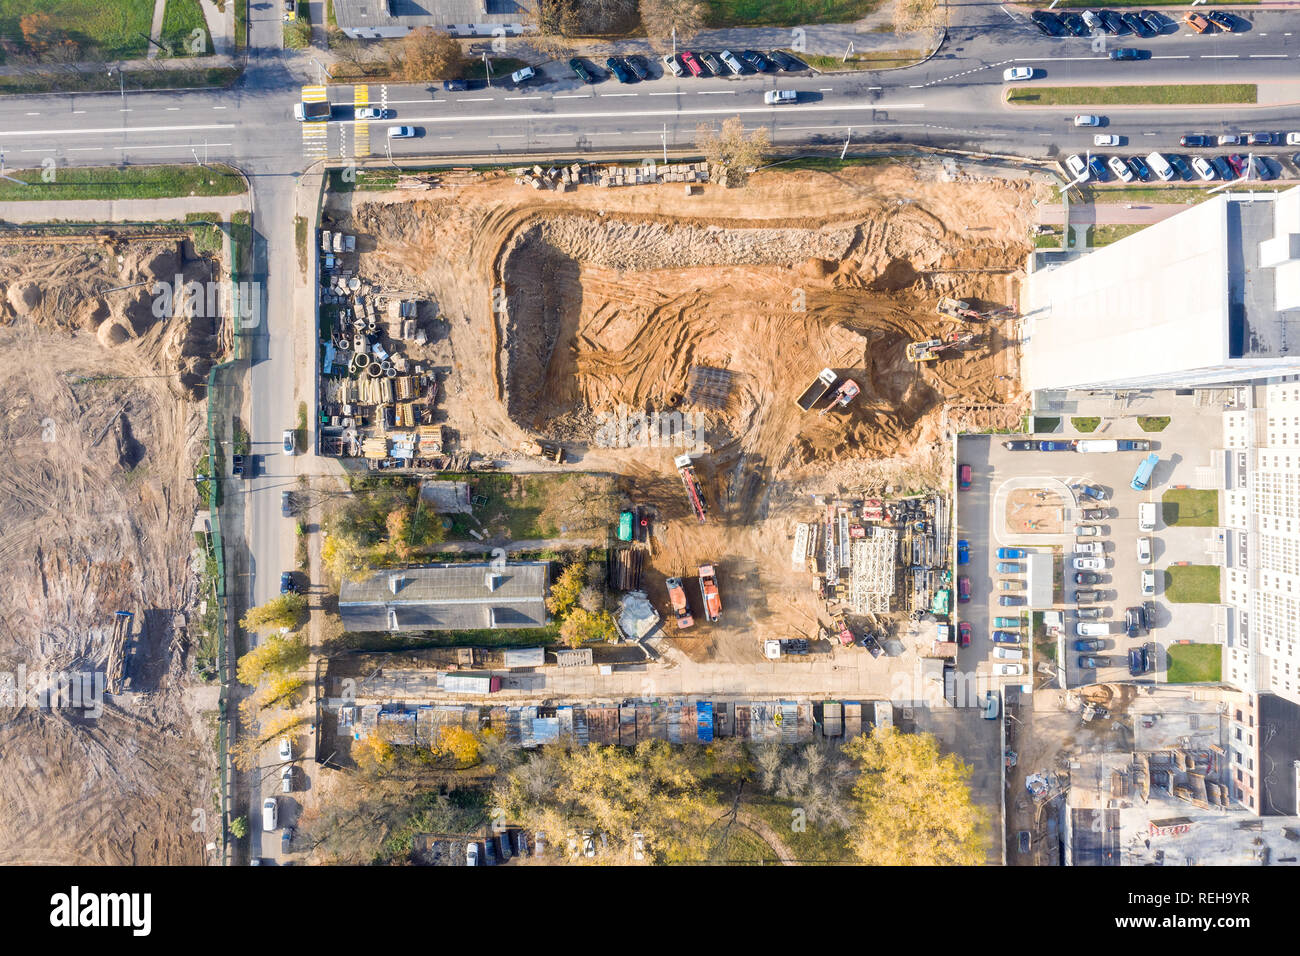 aerial top view of city construction site. city infrastructure development. drone photography - Stock Image